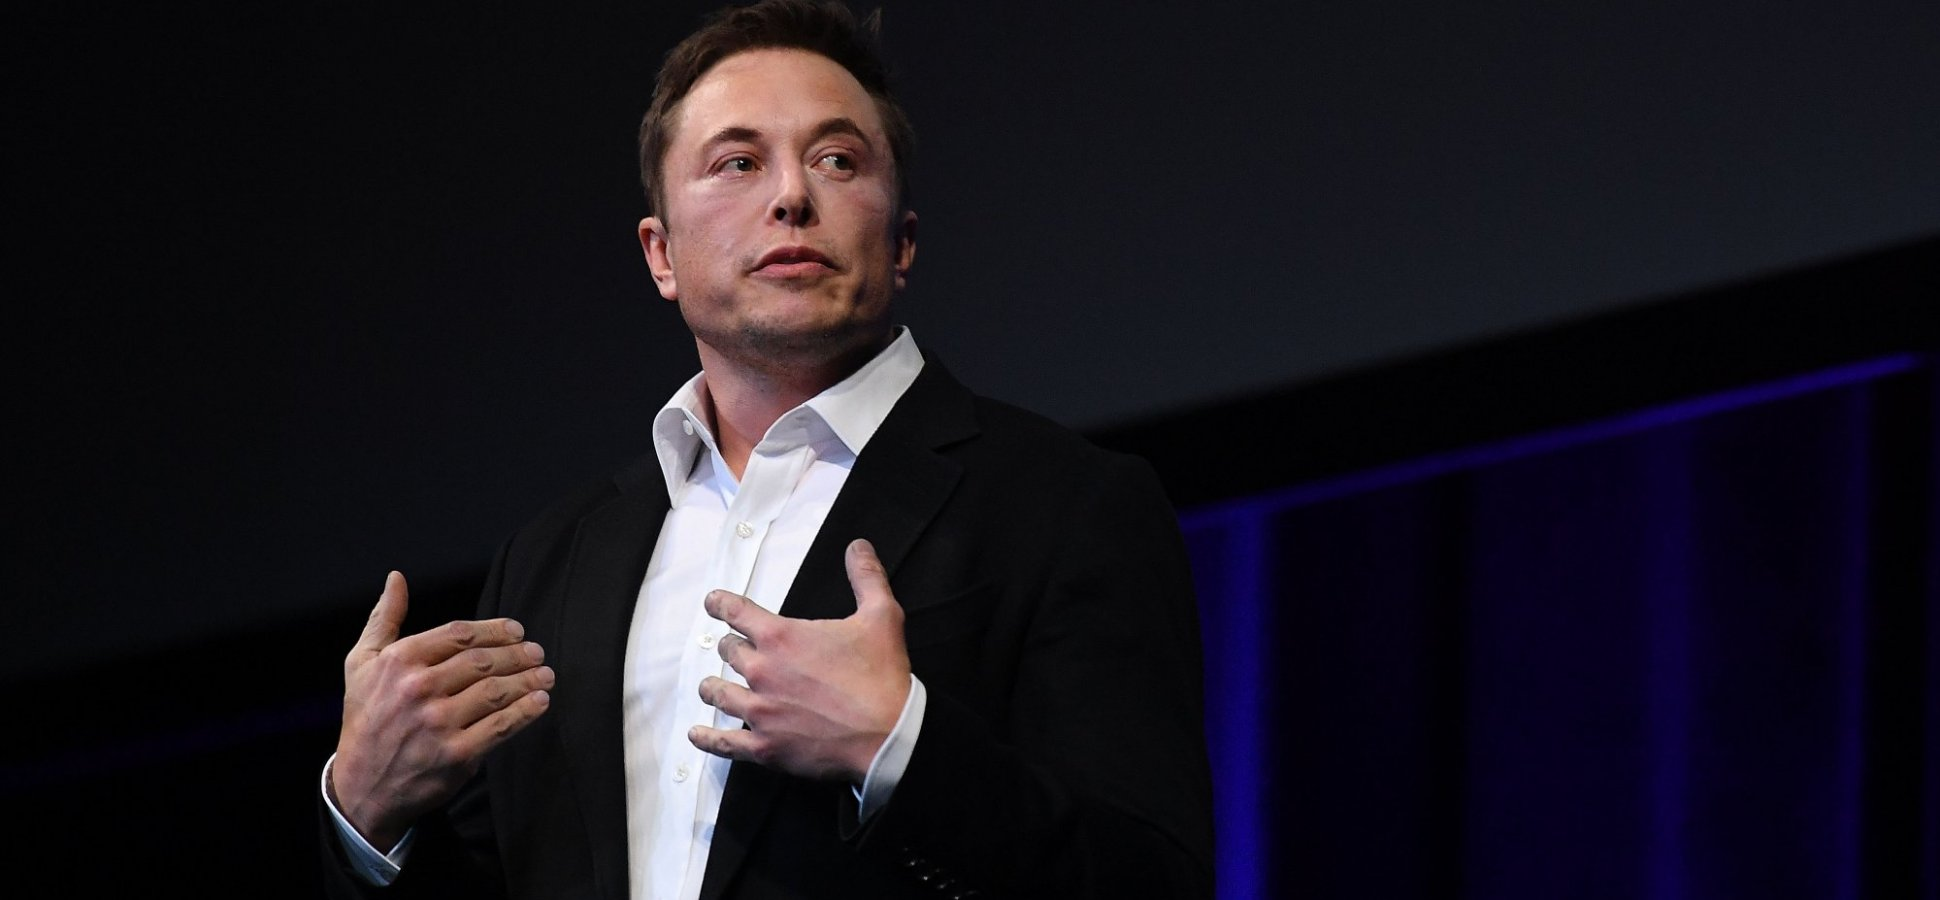 In a Surprise Move, Elon Musk Just Made What Might Be His Biggest Announcement of 2018